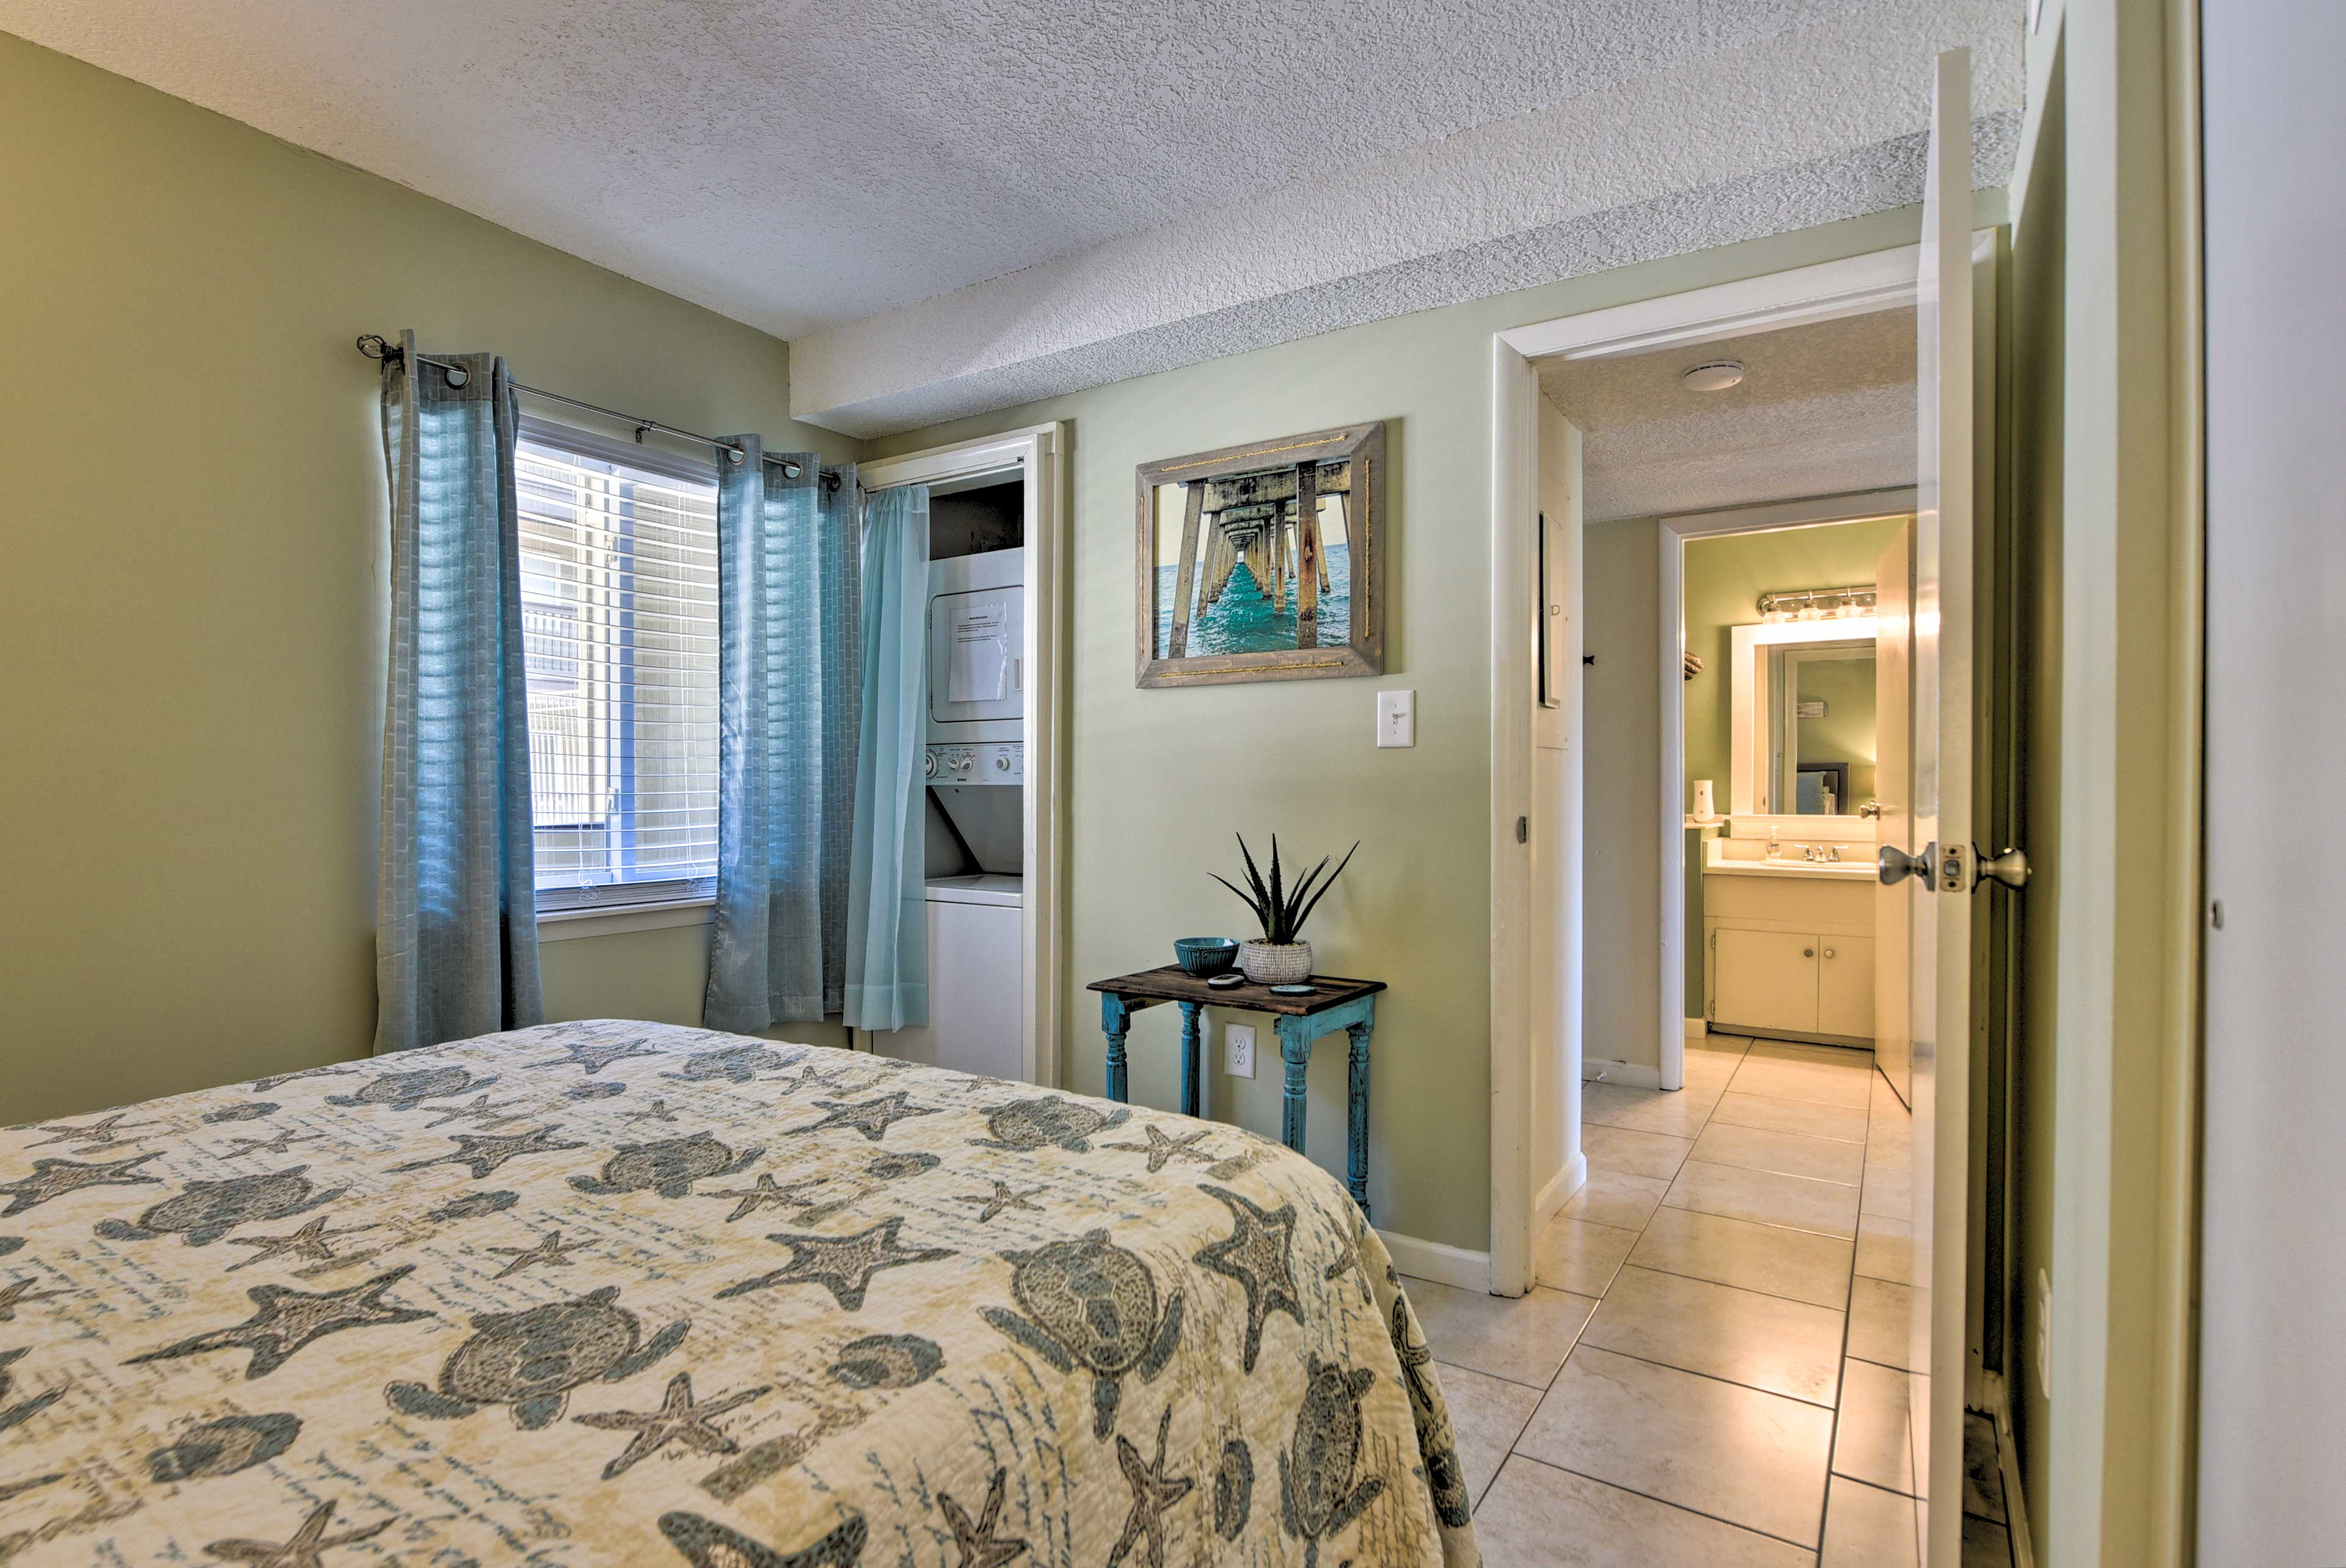 This bedroom also includes a stacked washer/dryer.